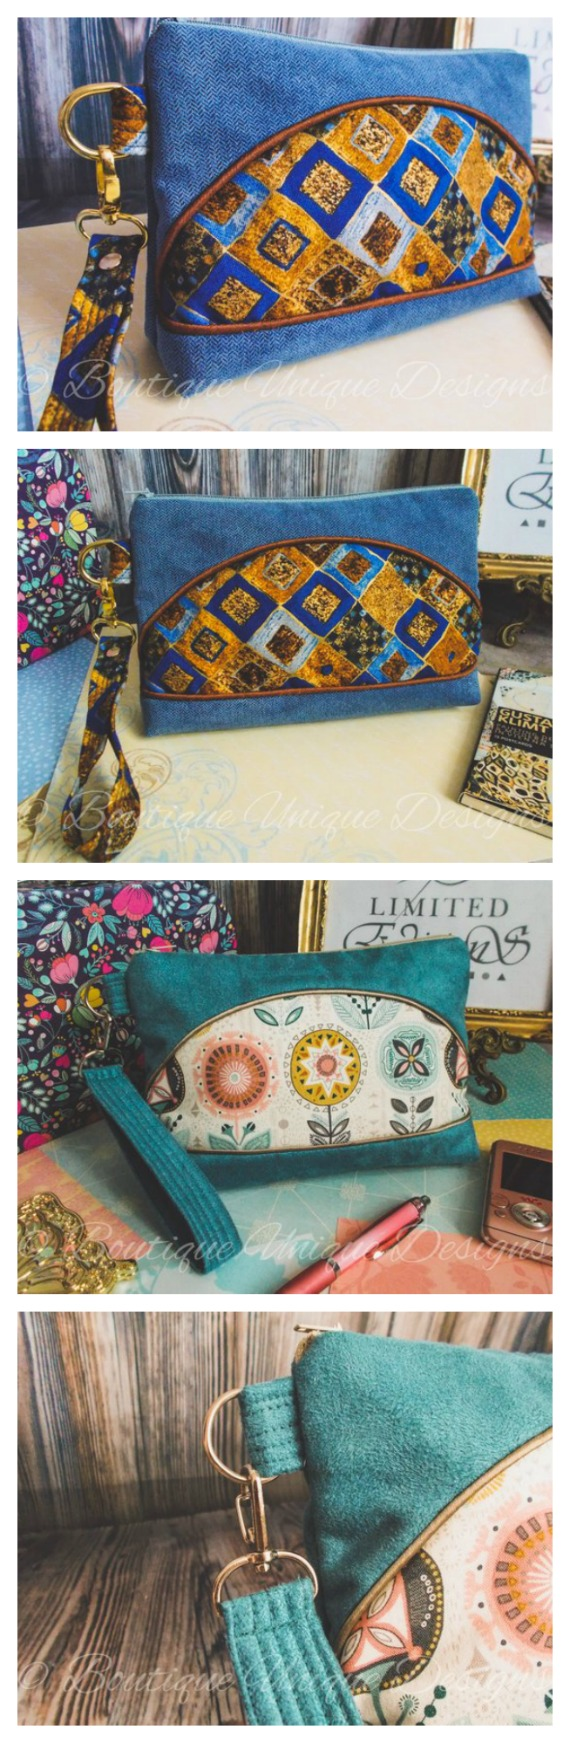 Why not download this pattern and make these awesome wristlet bags. Lucy and Amy are handy sized wristlet bags for those times when you don't want a big bag with you but still need to carry those essential items. The front feature panel of each of the wristlets are eye-catching and allow you to show off some of your favourite fabrics and colour combinations. These are an easy make and can be made with or without piping and wadding to suit your own taste.